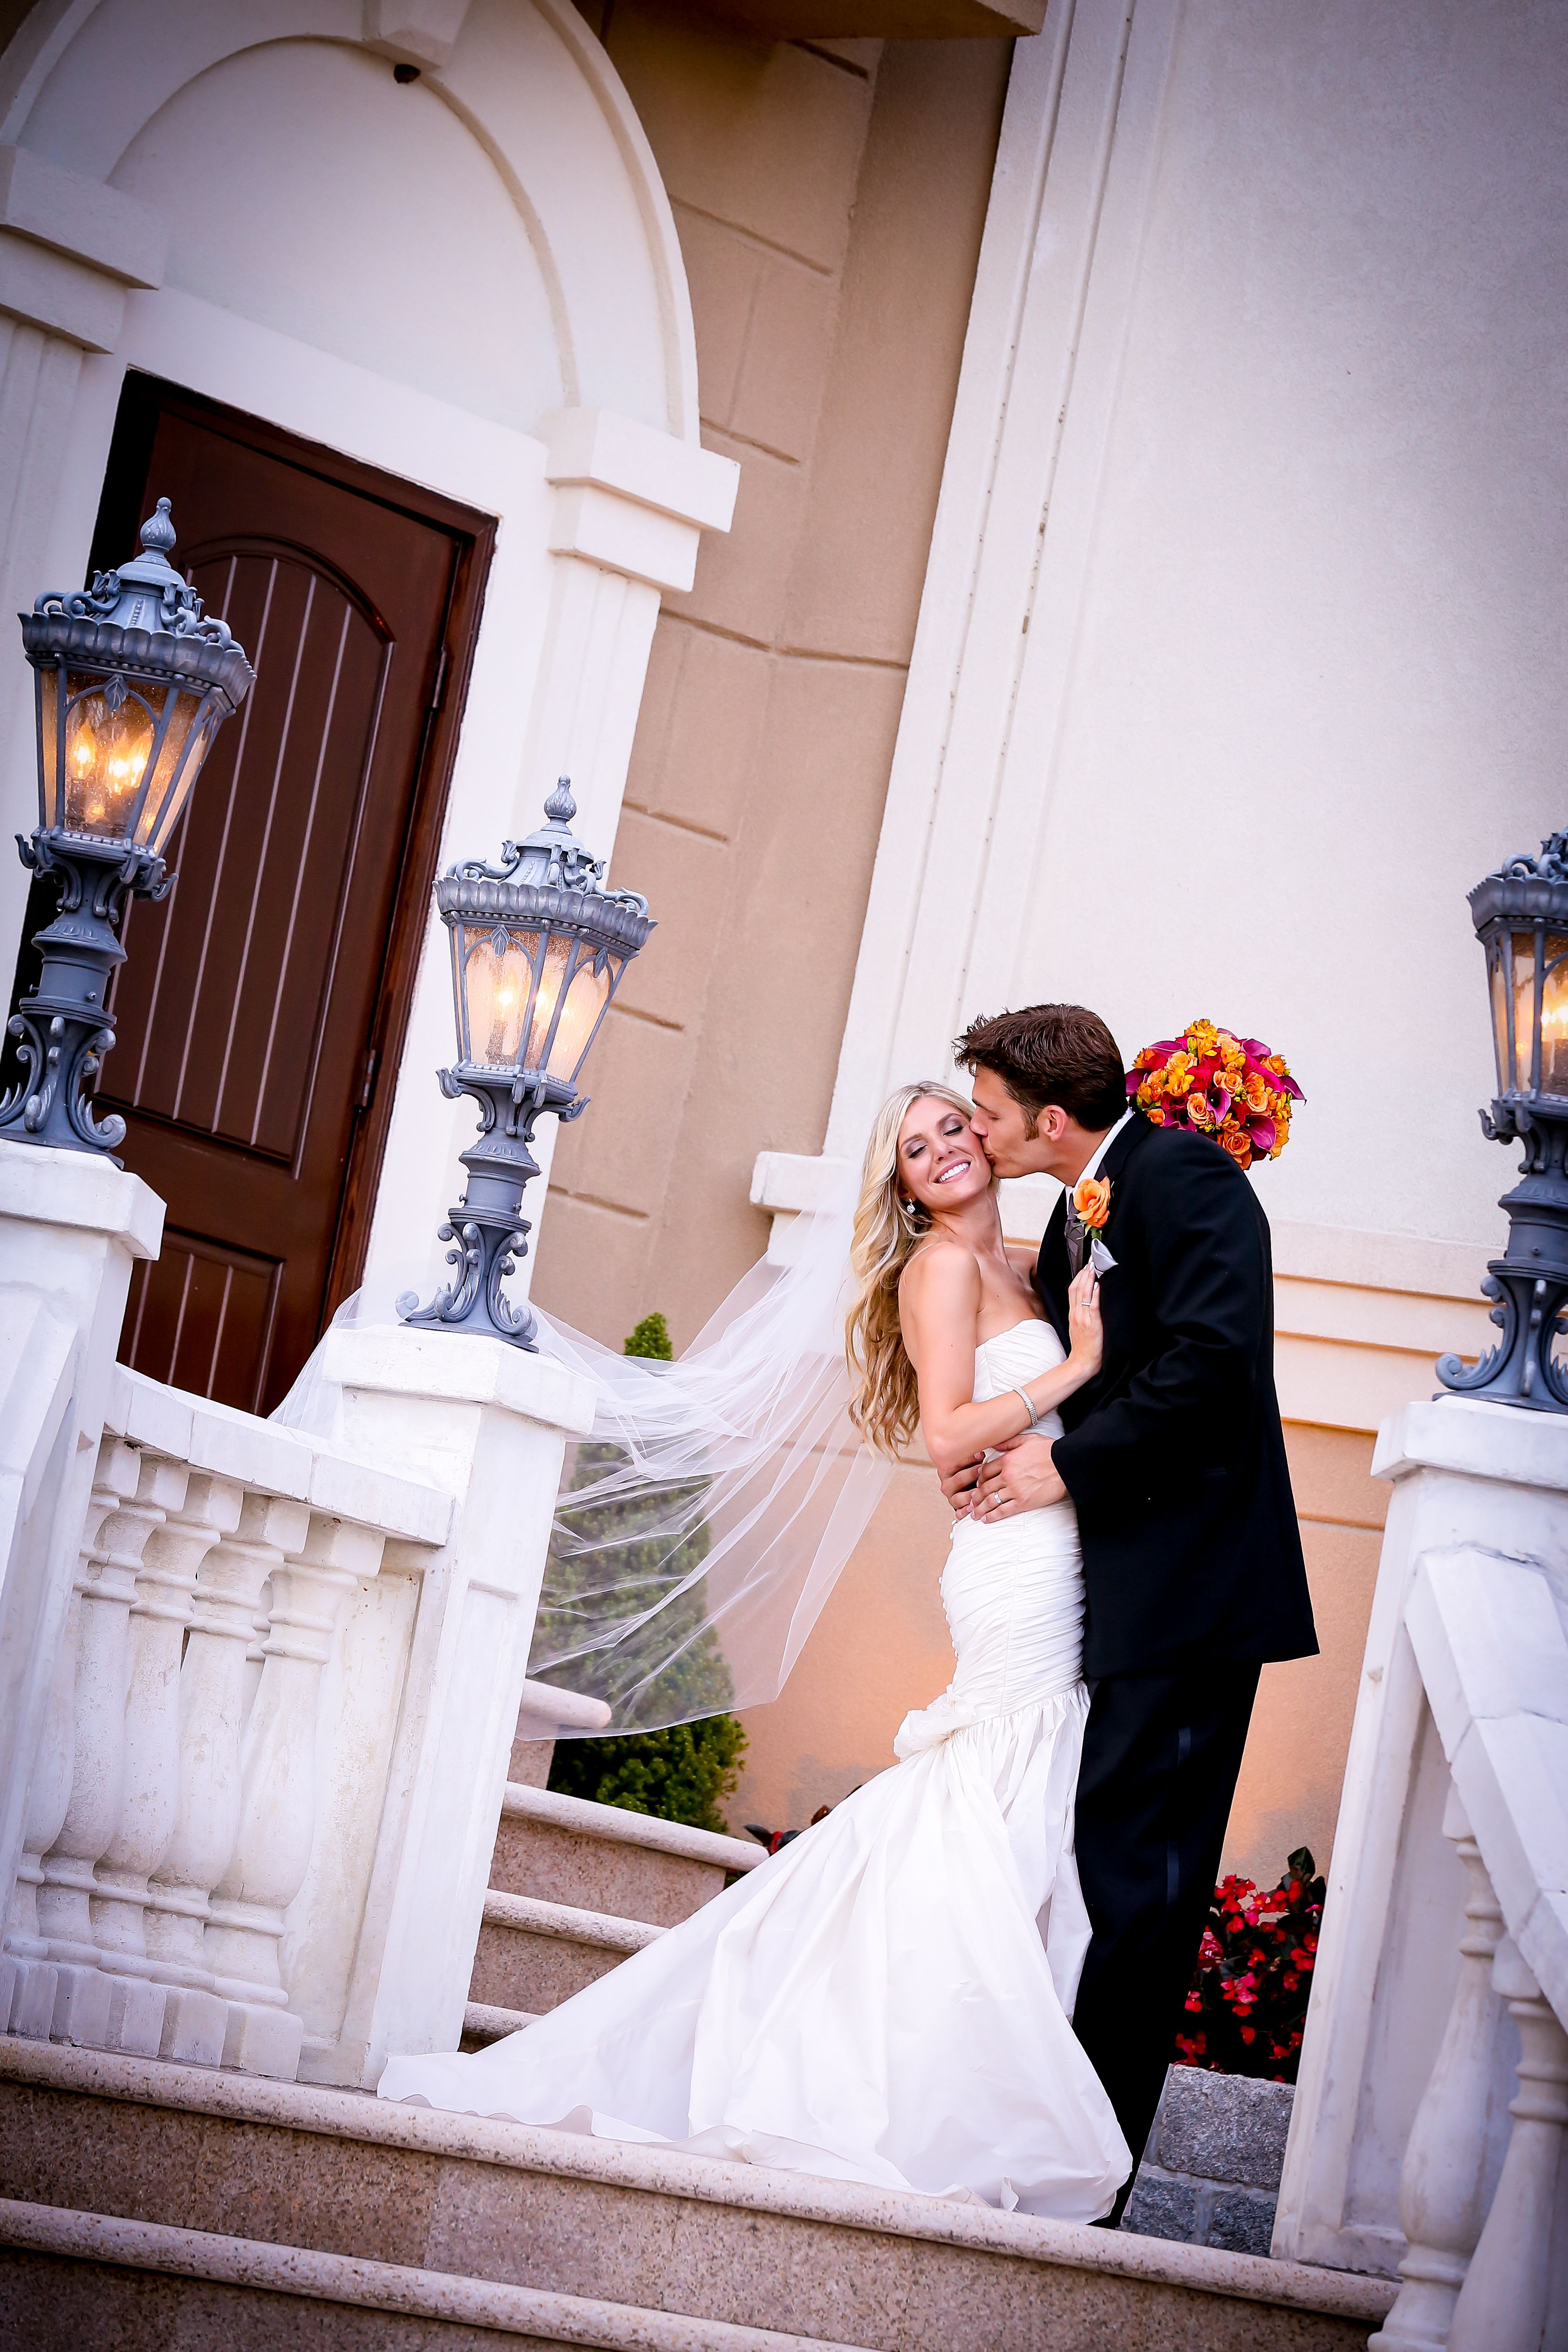 New York City wedding photography by Giovanni Photographic Artist #wchappyhour http://www.giovanniphotographicartist.com